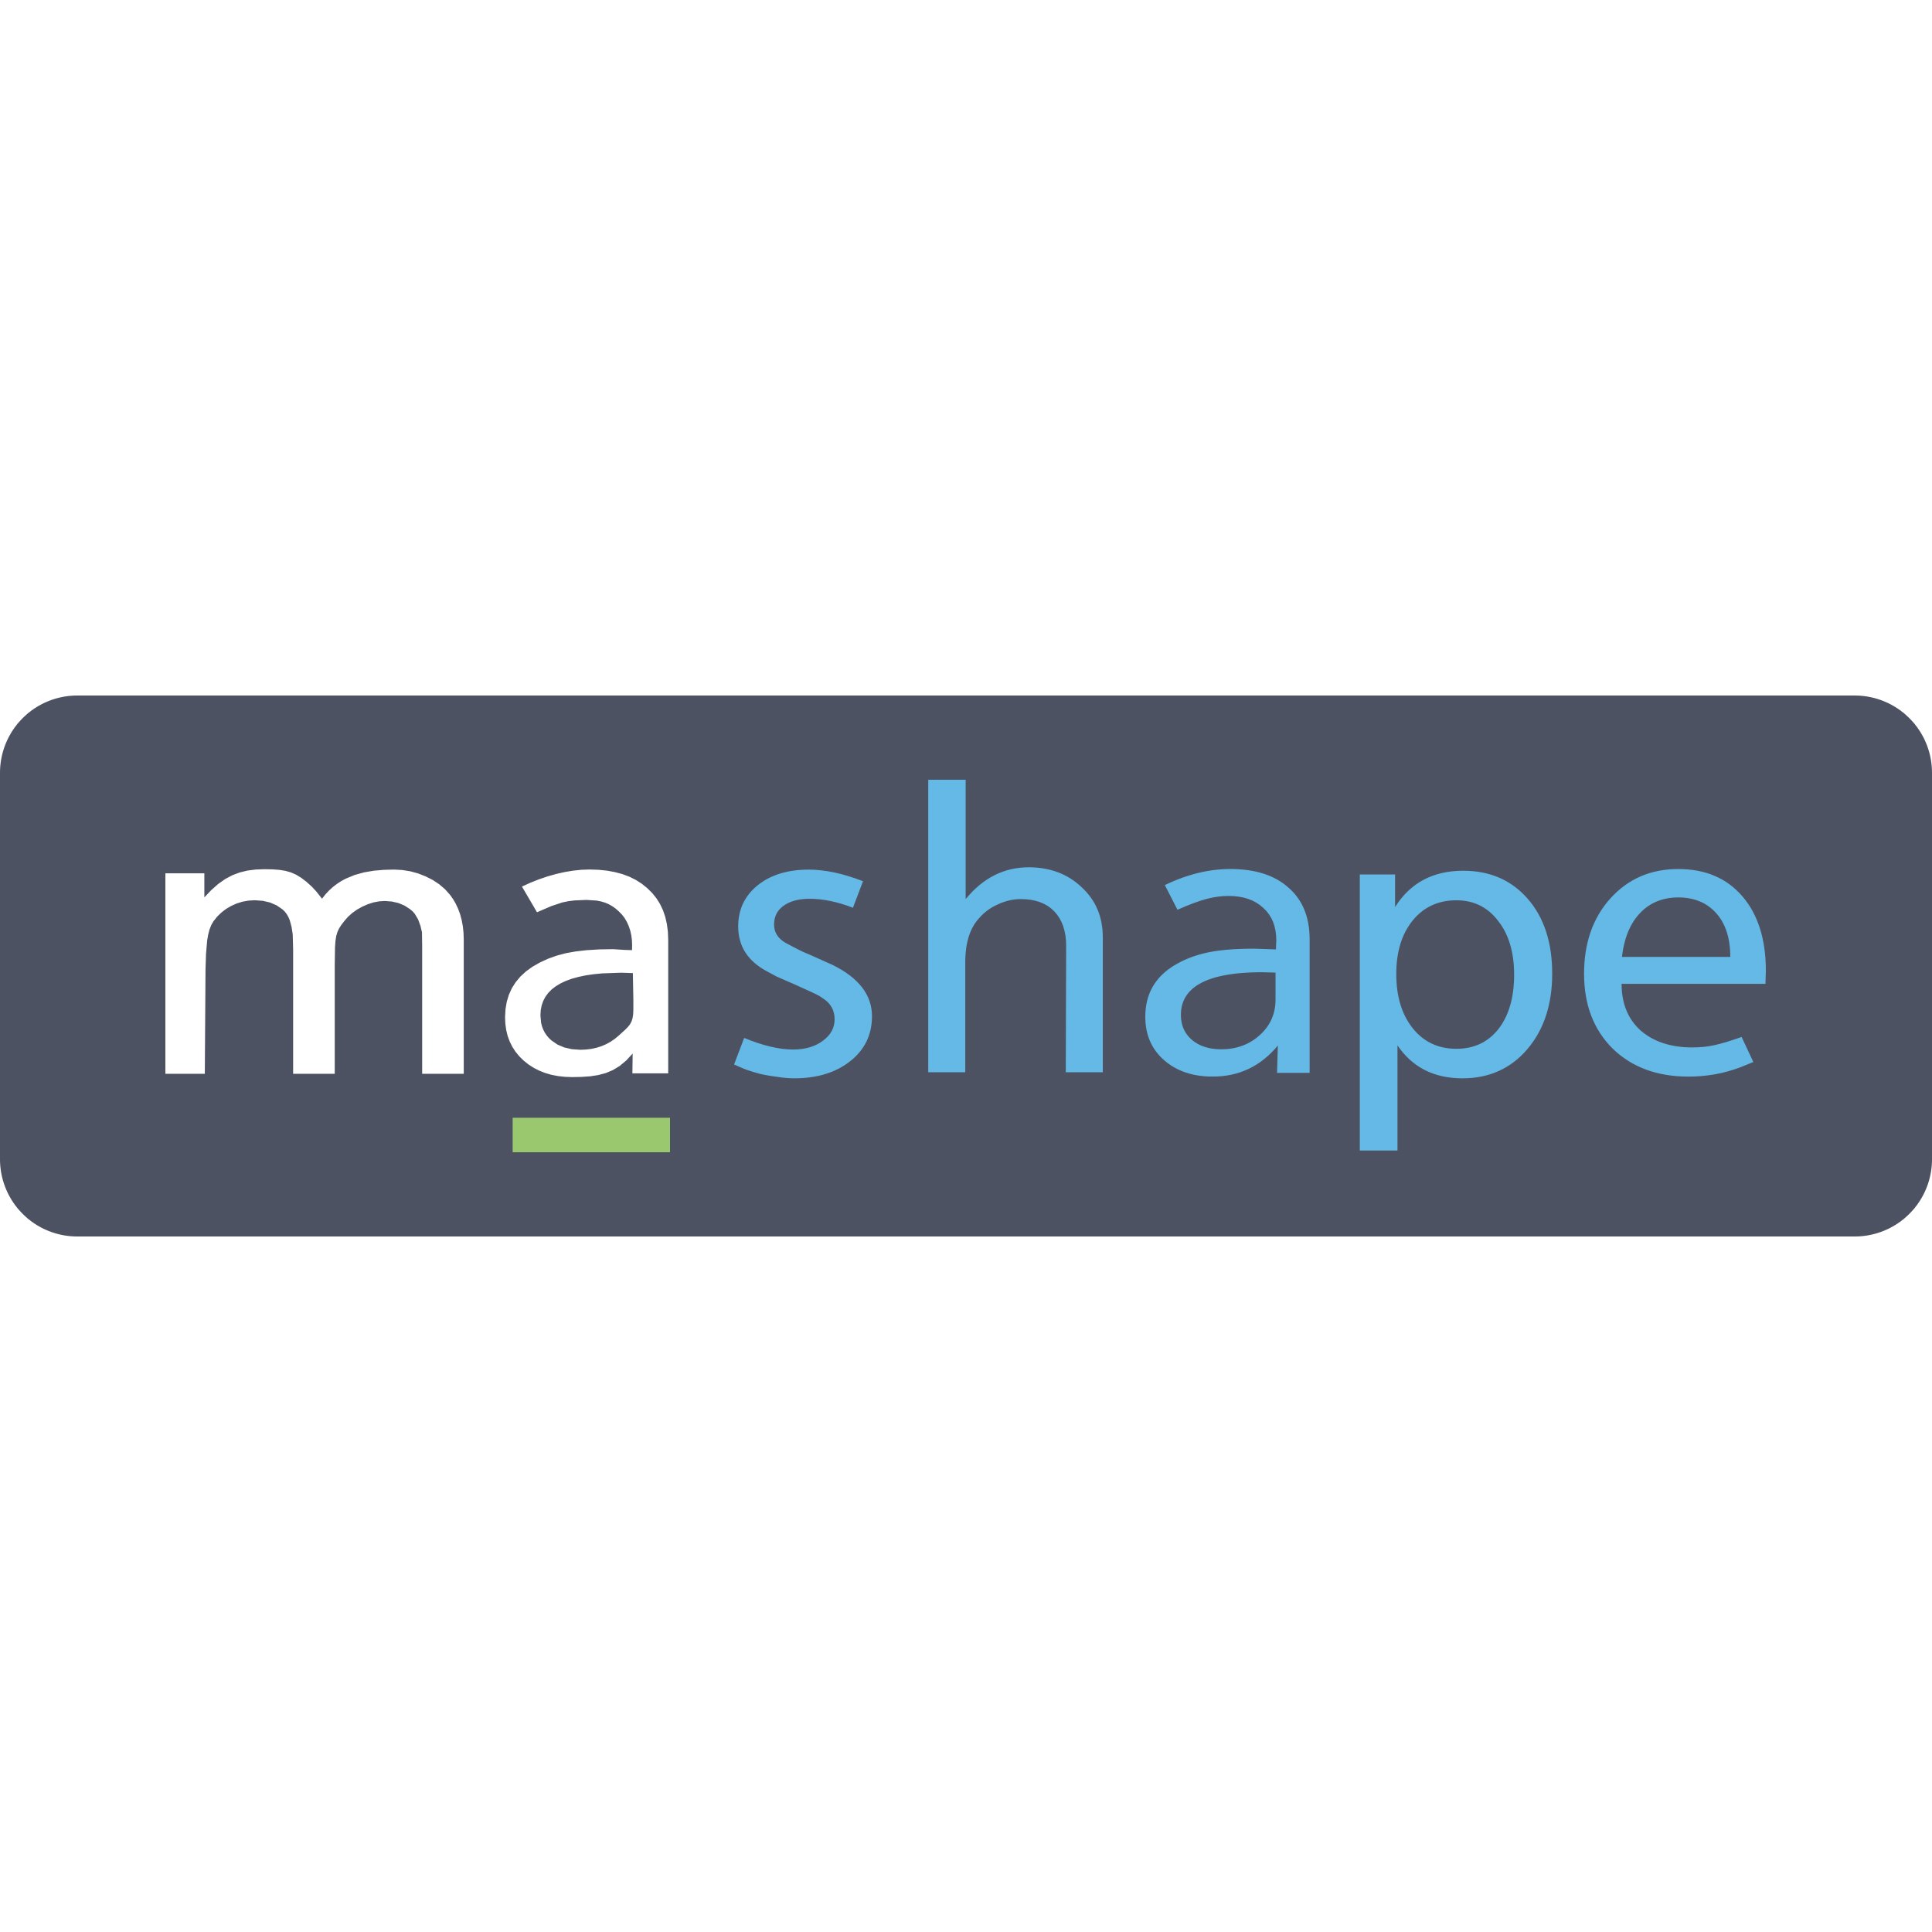 mashape_logo.jpg